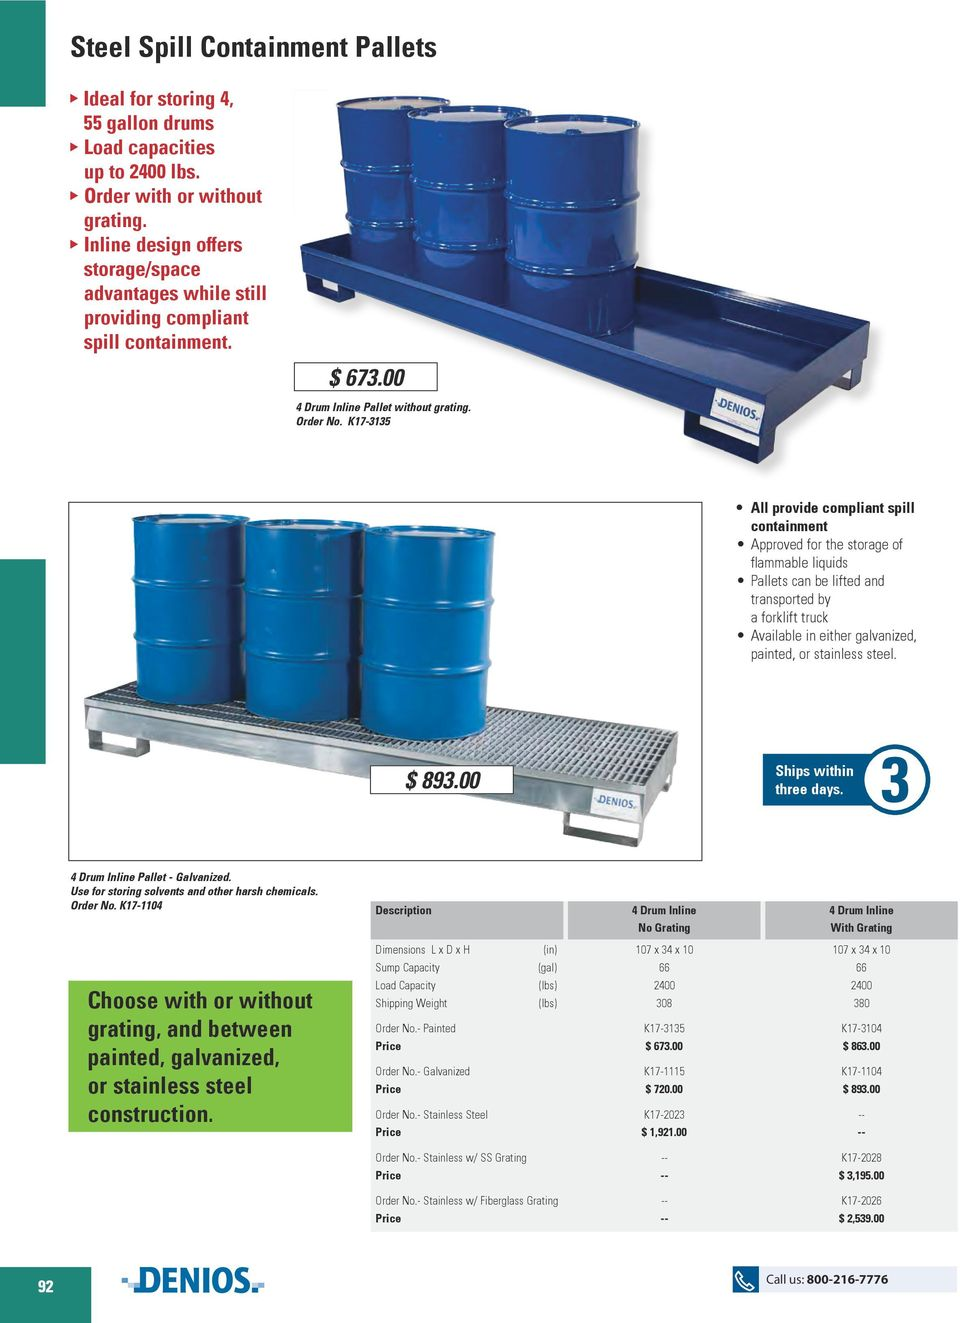 K17-3135 All provide compliant spill containment Approved for the storage of flammable liquids Pallets can be lifted and transported by a forklift truck Available in either galvanized, painted, or